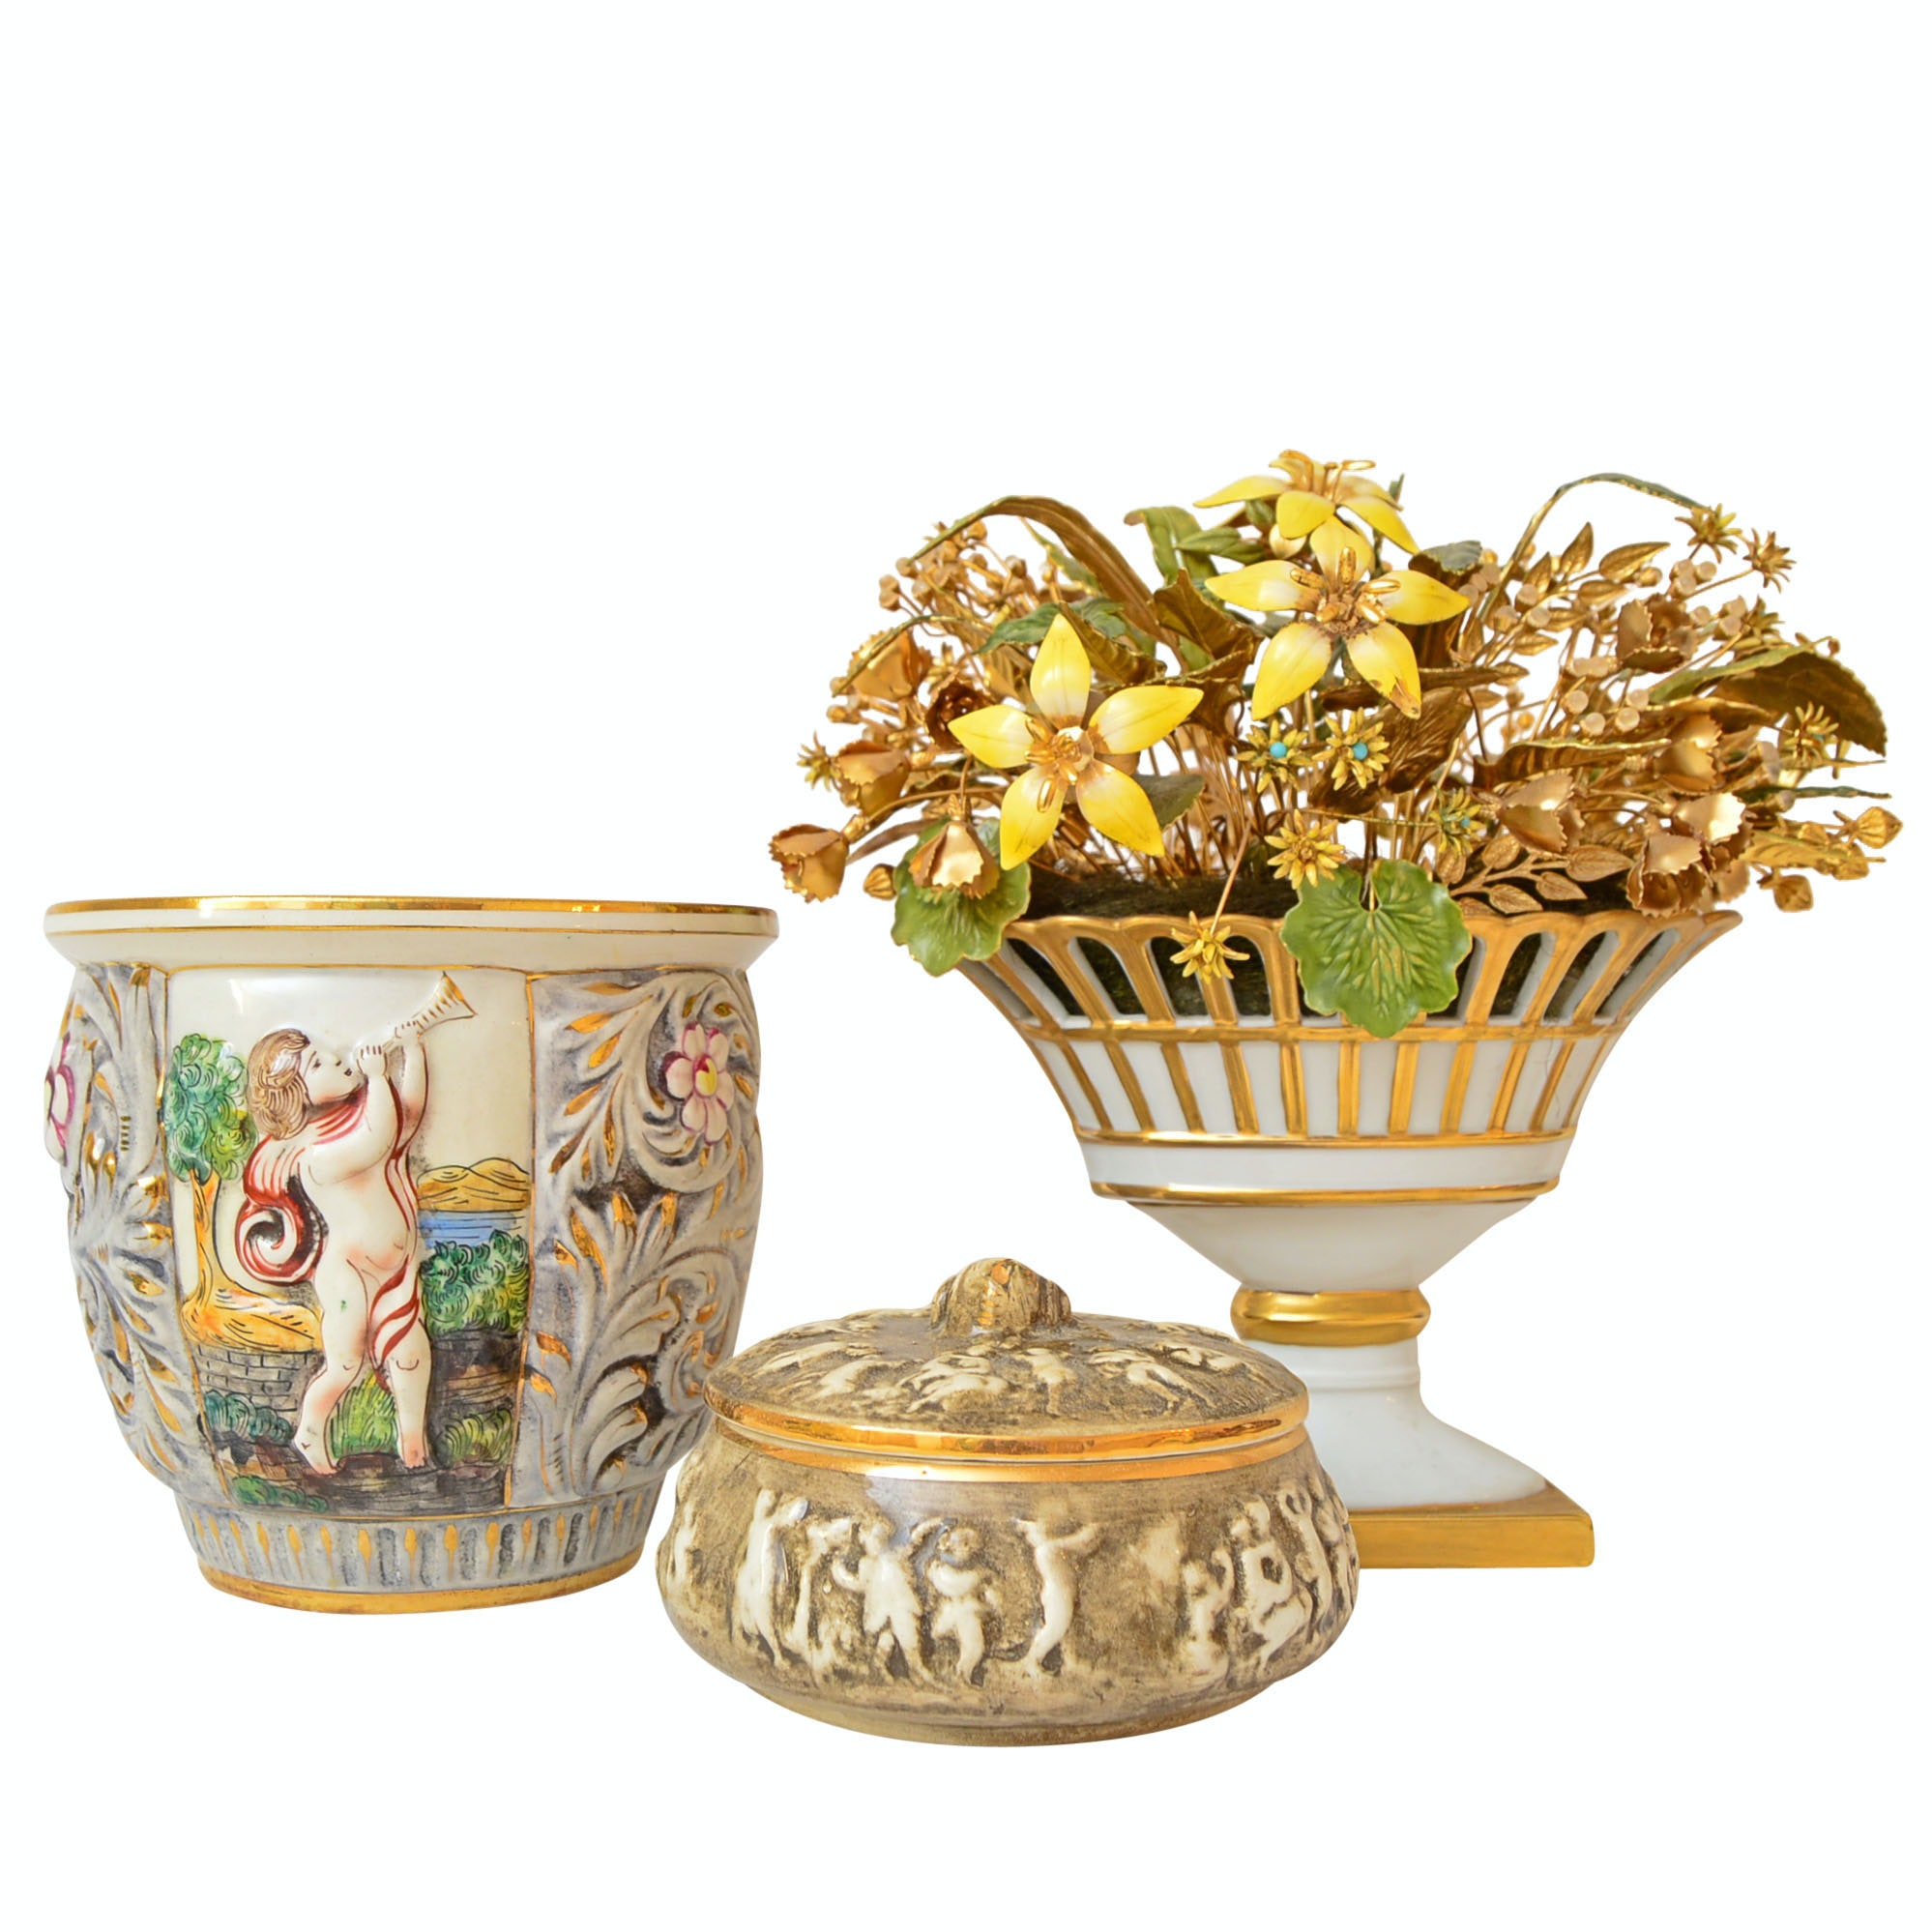 Capodimonte Trinket Box and Planter, Gorham Porcelain and Metal Flower Basket